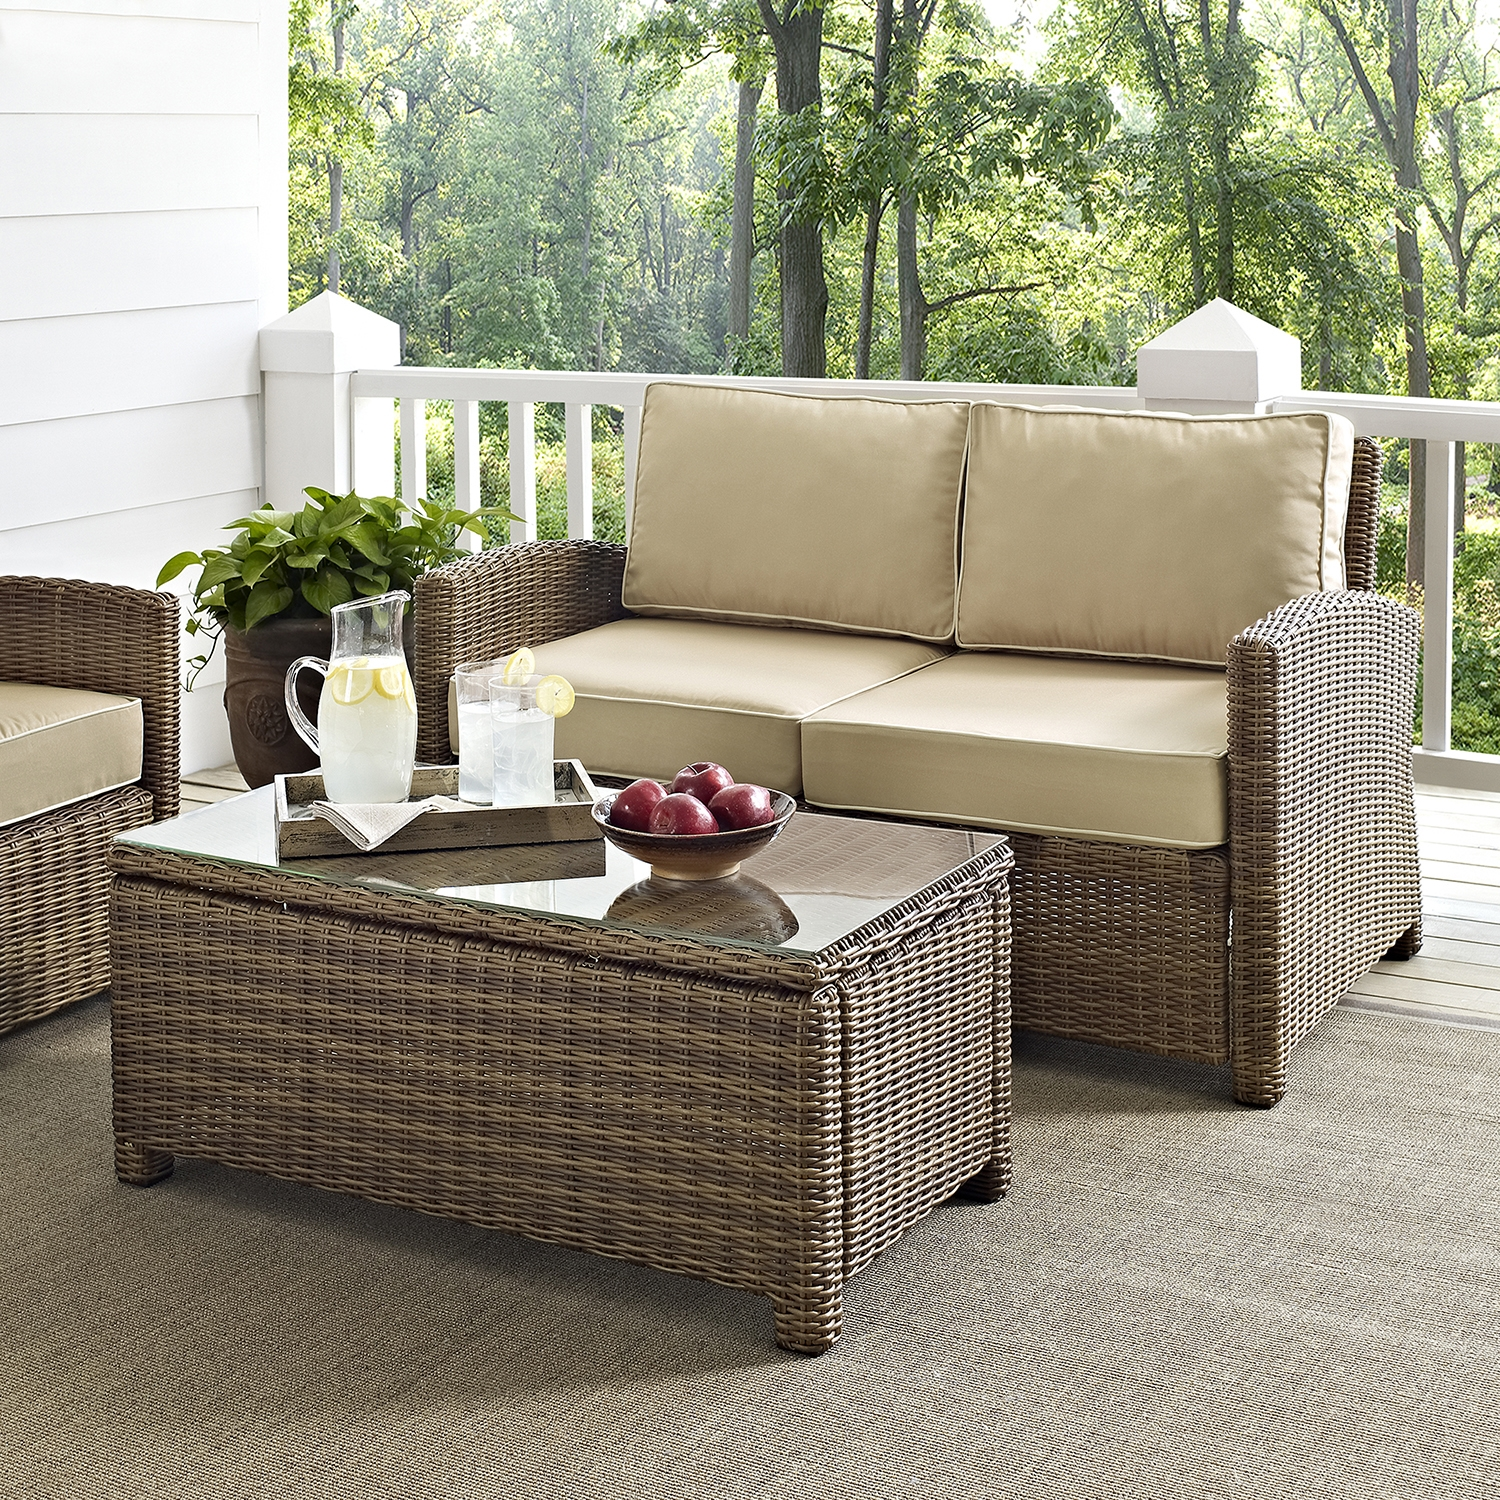 Bradenton Wicker Loveseat and Glass Top Table with Sand Cushions - CROS-KO70025WB-SA